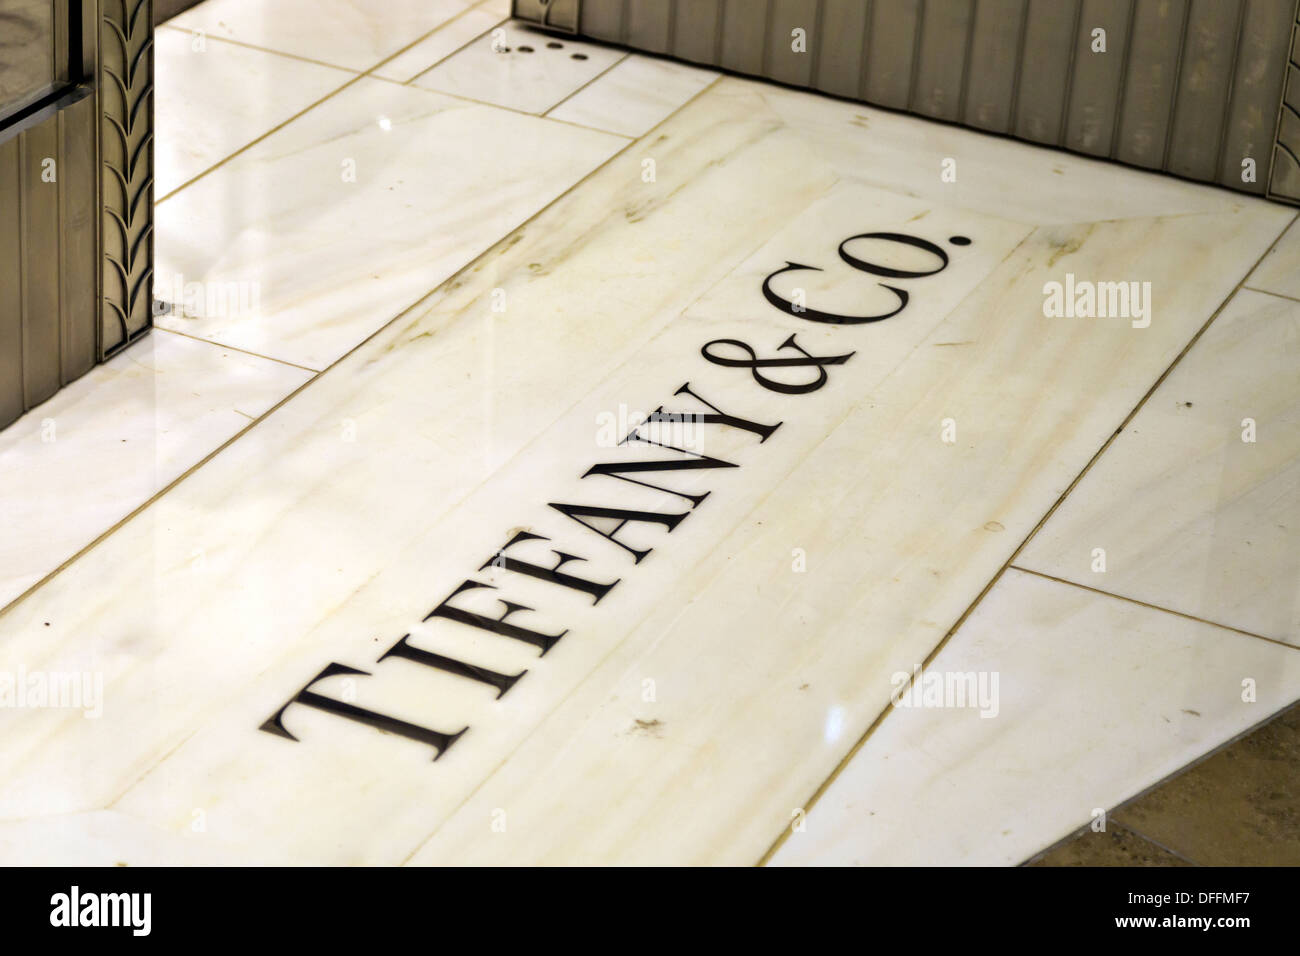 Tiffany co engraving on tile flooring in front of store tiffany co engraving on tile flooring in front of store westfield valley fair mall santa clara california usa dailygadgetfo Gallery